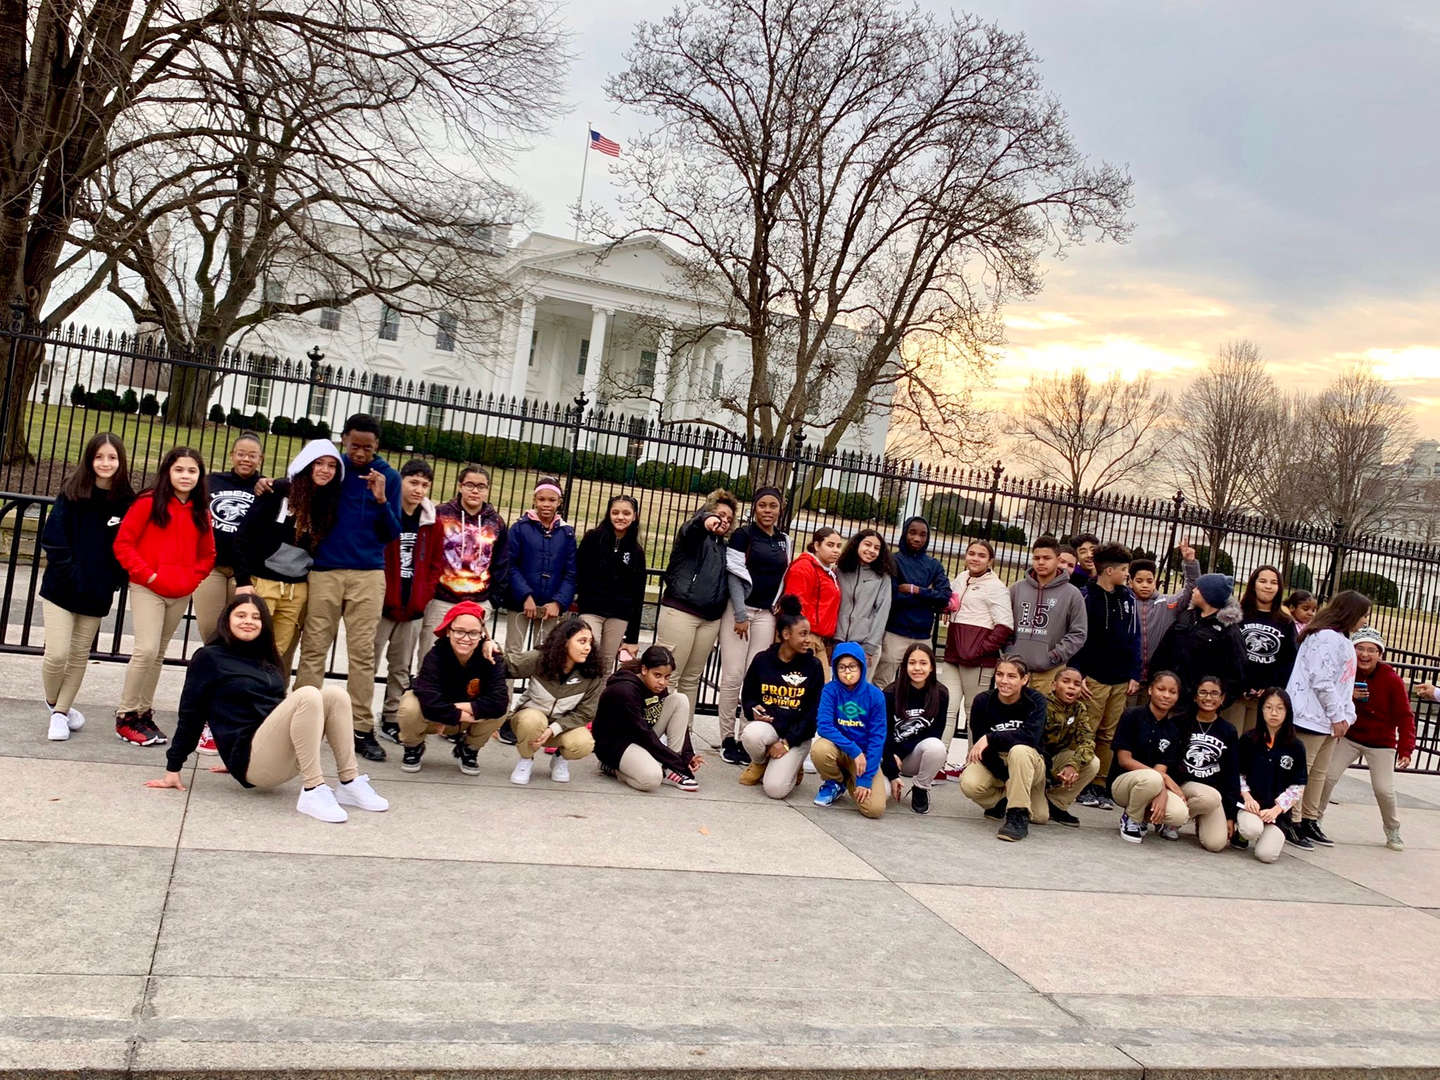 Groups of students in front of the White House